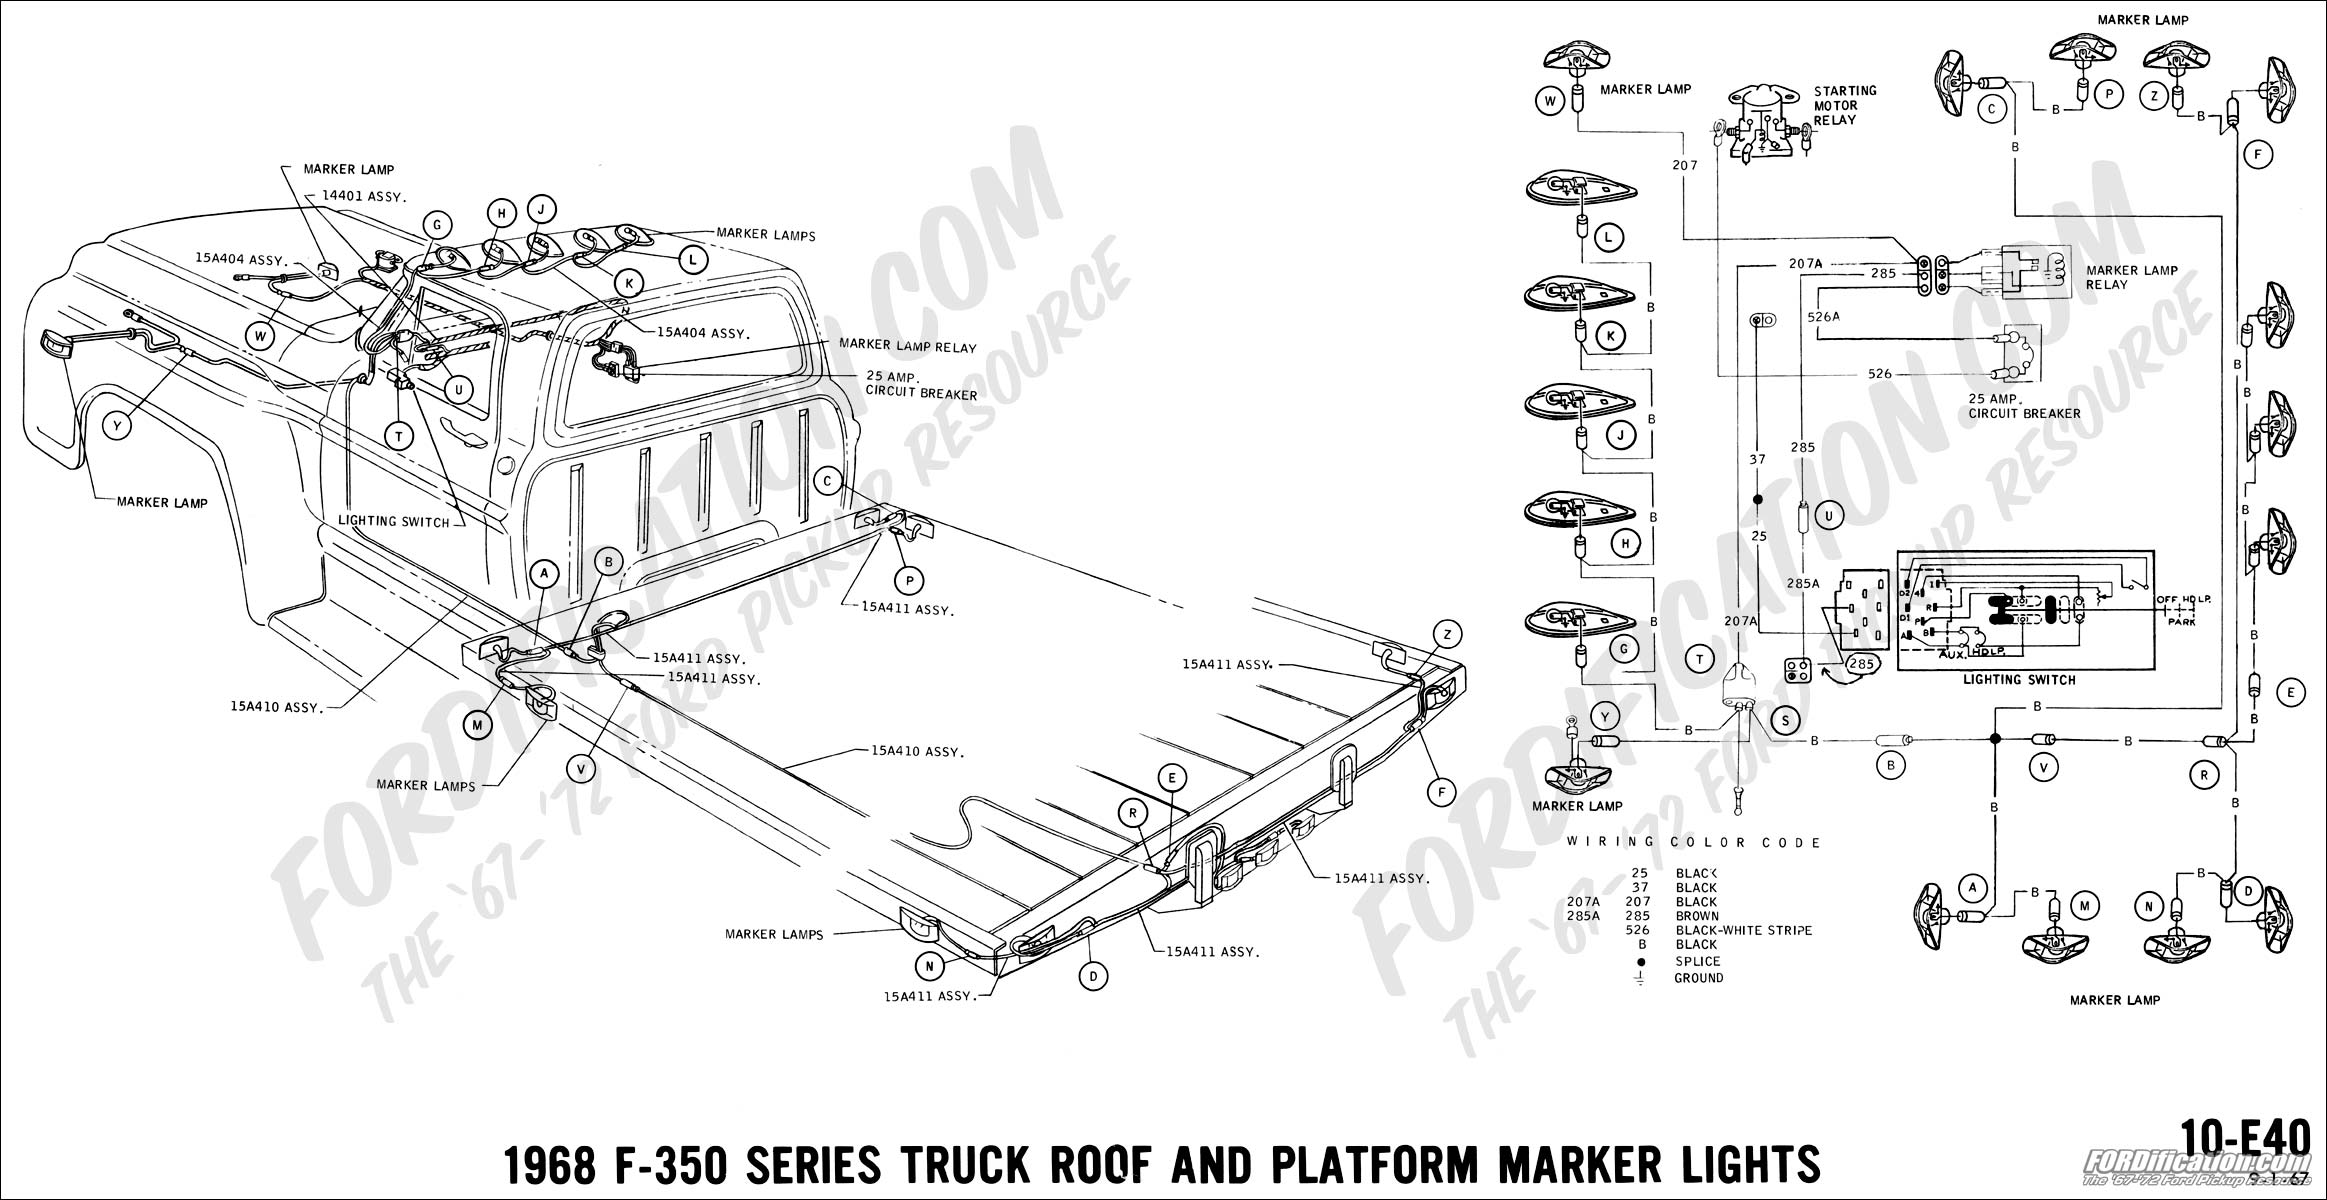 Wiring Diagram For Ford Truck on 1968 ford truck parts, 1968 ford truck cab mount, pickup truck diagram, 1968 ford truck brochure, 1968 ford truck radio, 1968 ford truck carburetor, truck parts diagram, ford truck engine diagram, 1968 ford truck wheels, 1968 ford truck wire schematic drawing, 1968 ford truck exhaust, 1968 ford truck shop manual, 1968 ford truck transmission, ford truck rear brake diagram, 93 ford relay diagram, 1968 ford truck air cleaner,